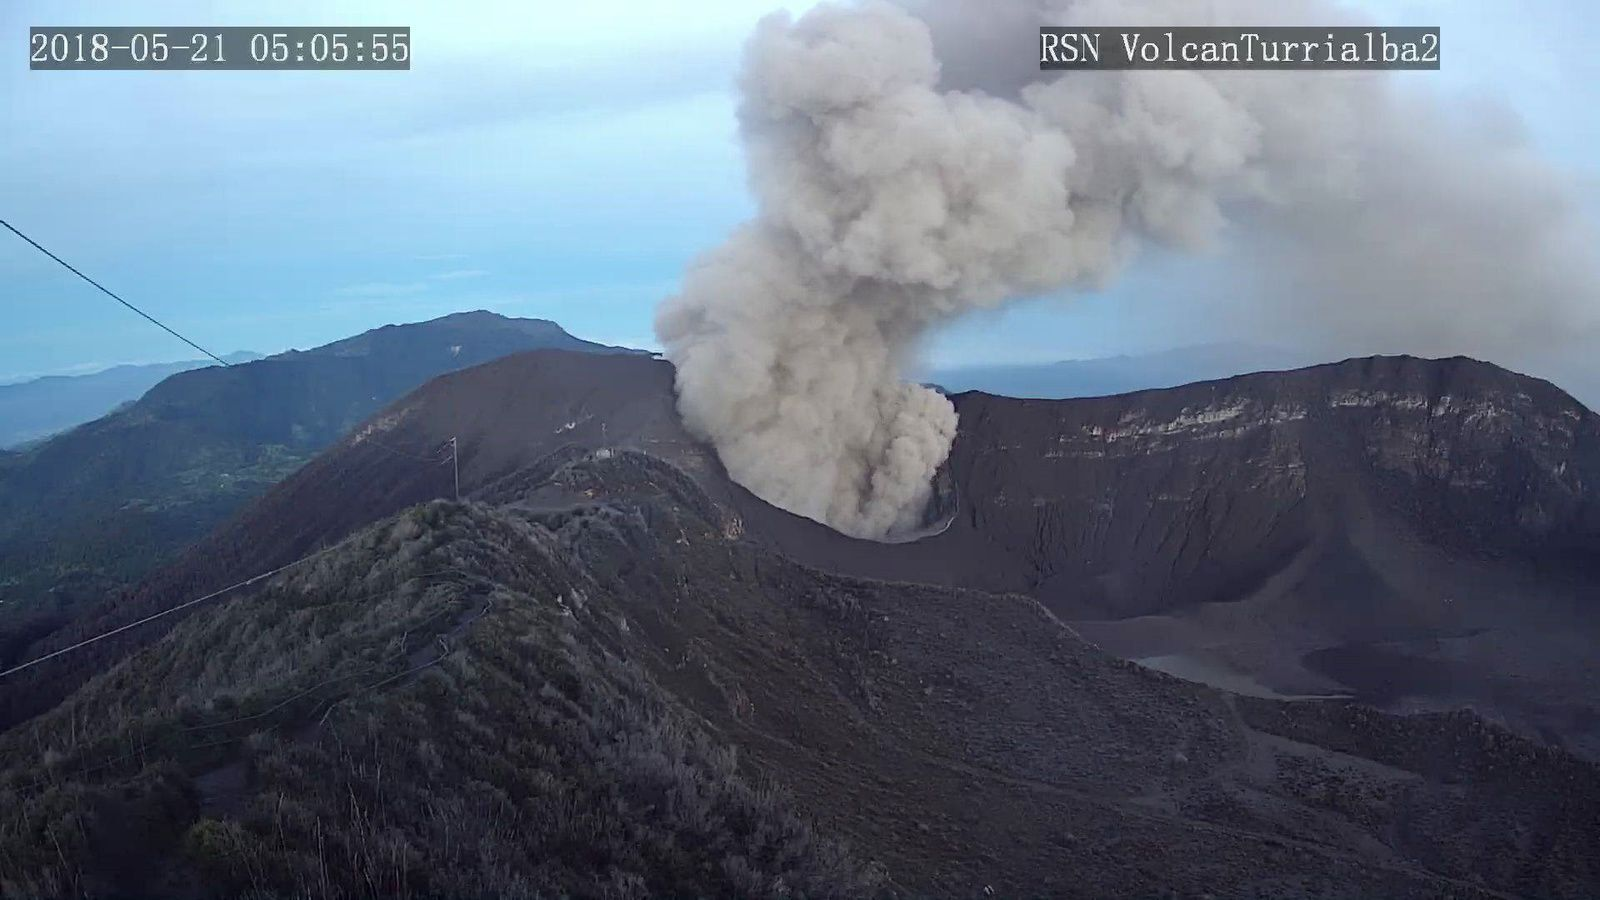 Turrialba - passive emission of ashes on 21.05.2018 / 5:05 - RSN webcam